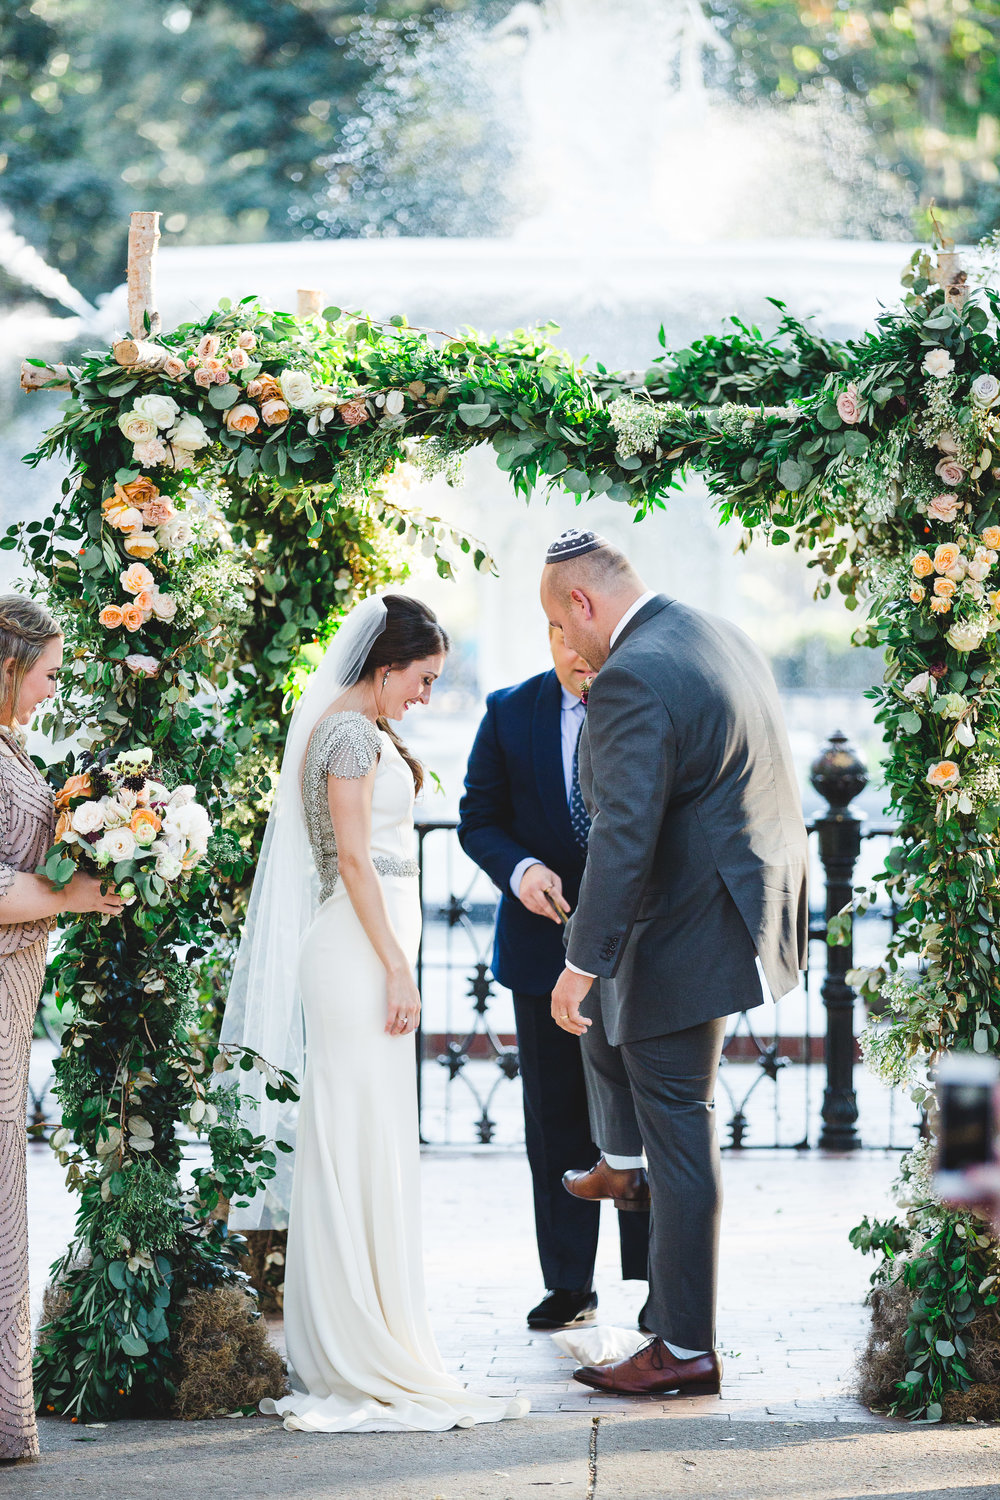 izzy-hudgins-photography-savannah-wedding-ivory-and-beau-bridal-boutique-savannah-wedding-planner-colonial-house-of-flowers-forsyth-park-wedding-old-fort-jackson-wedding-squidwed-films-savannah-boutique-savannah-weddings-33.jpg